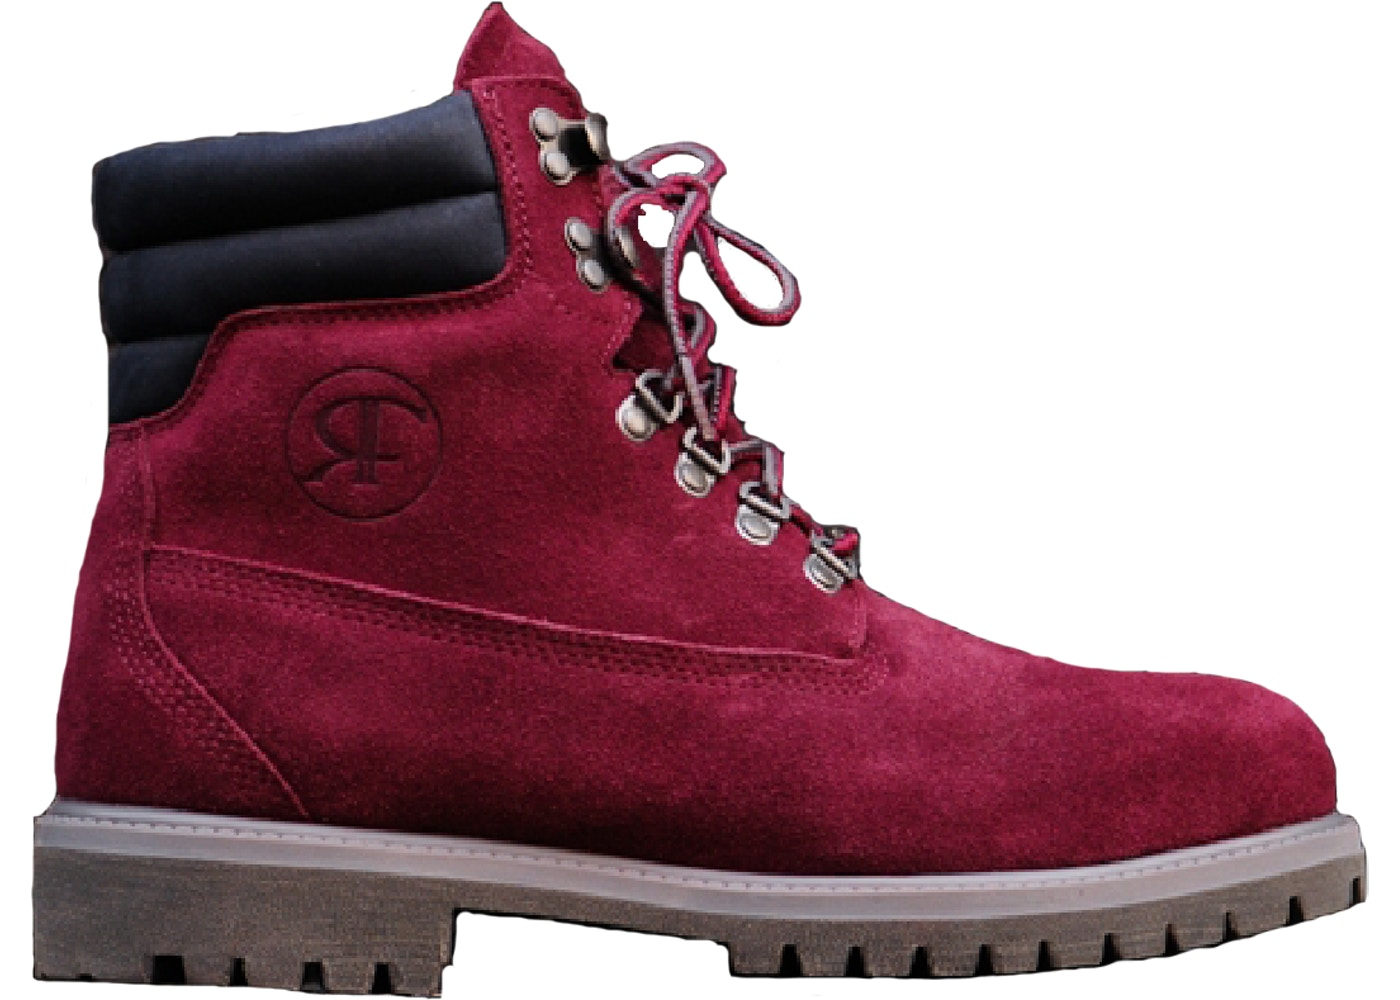 check out 4d03a 9ec2d Timberland 6